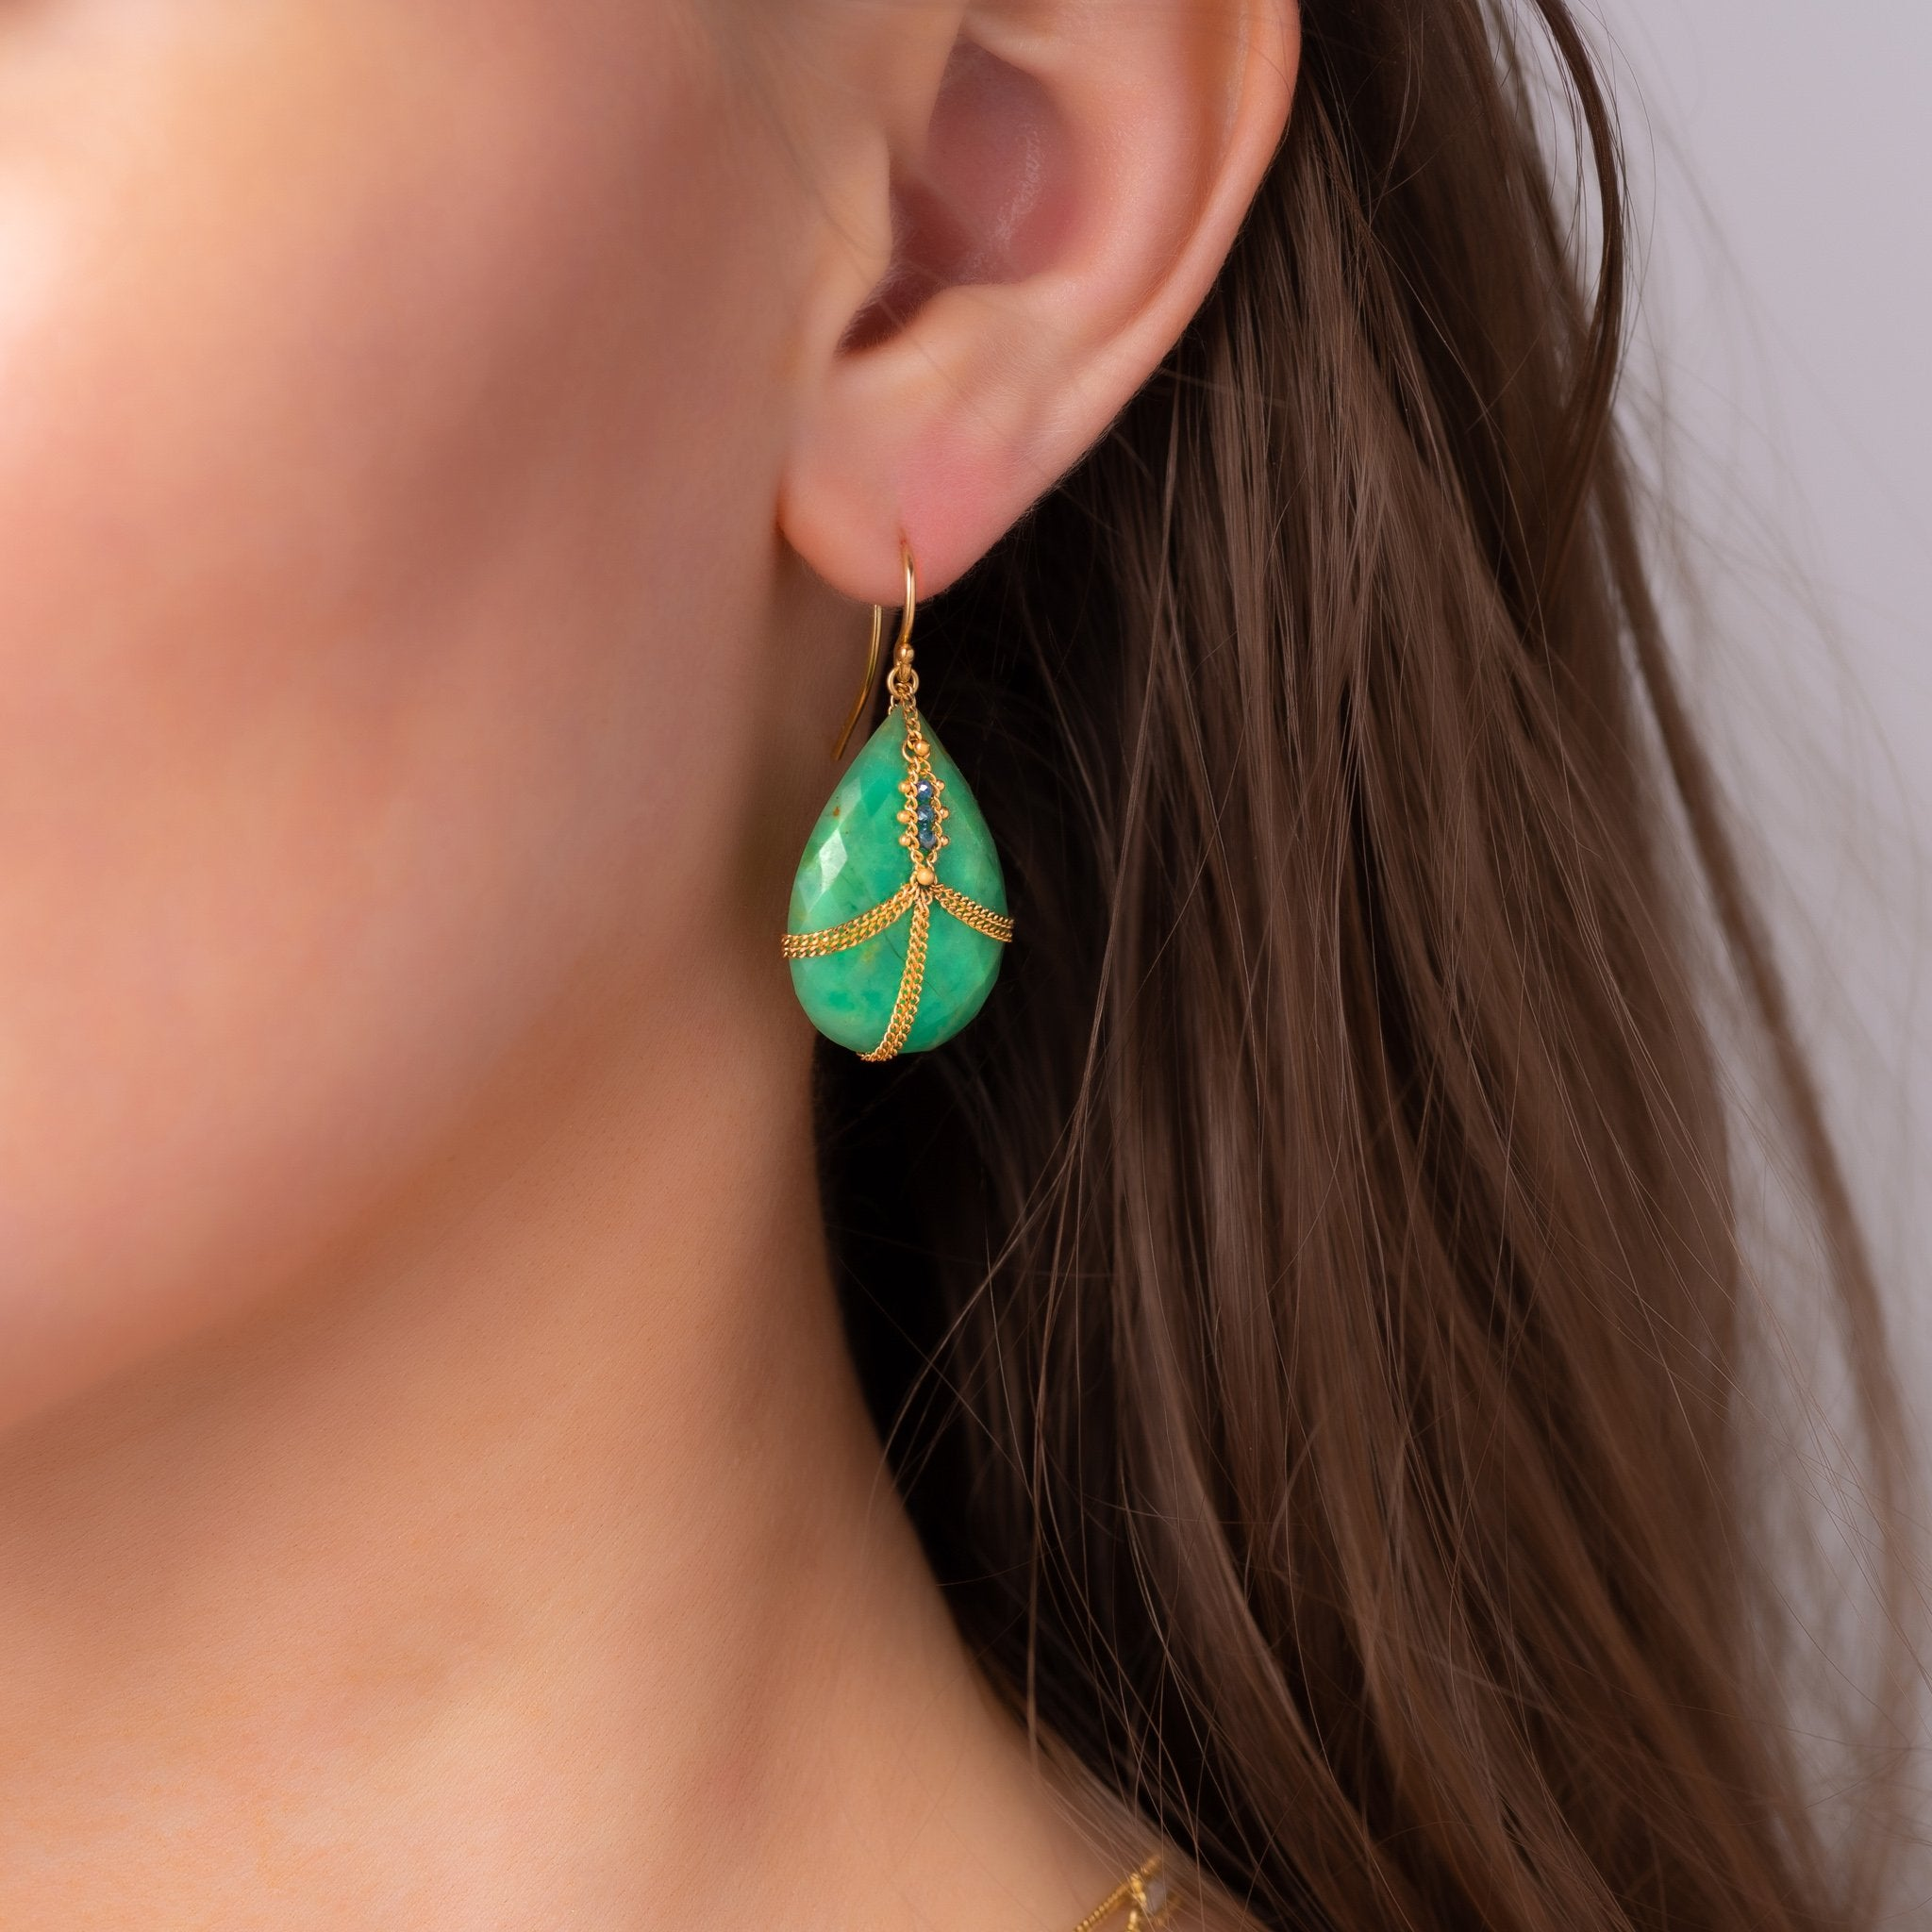 Blue Diamond Draped & Chrysoprase Earrings lifestyle picture